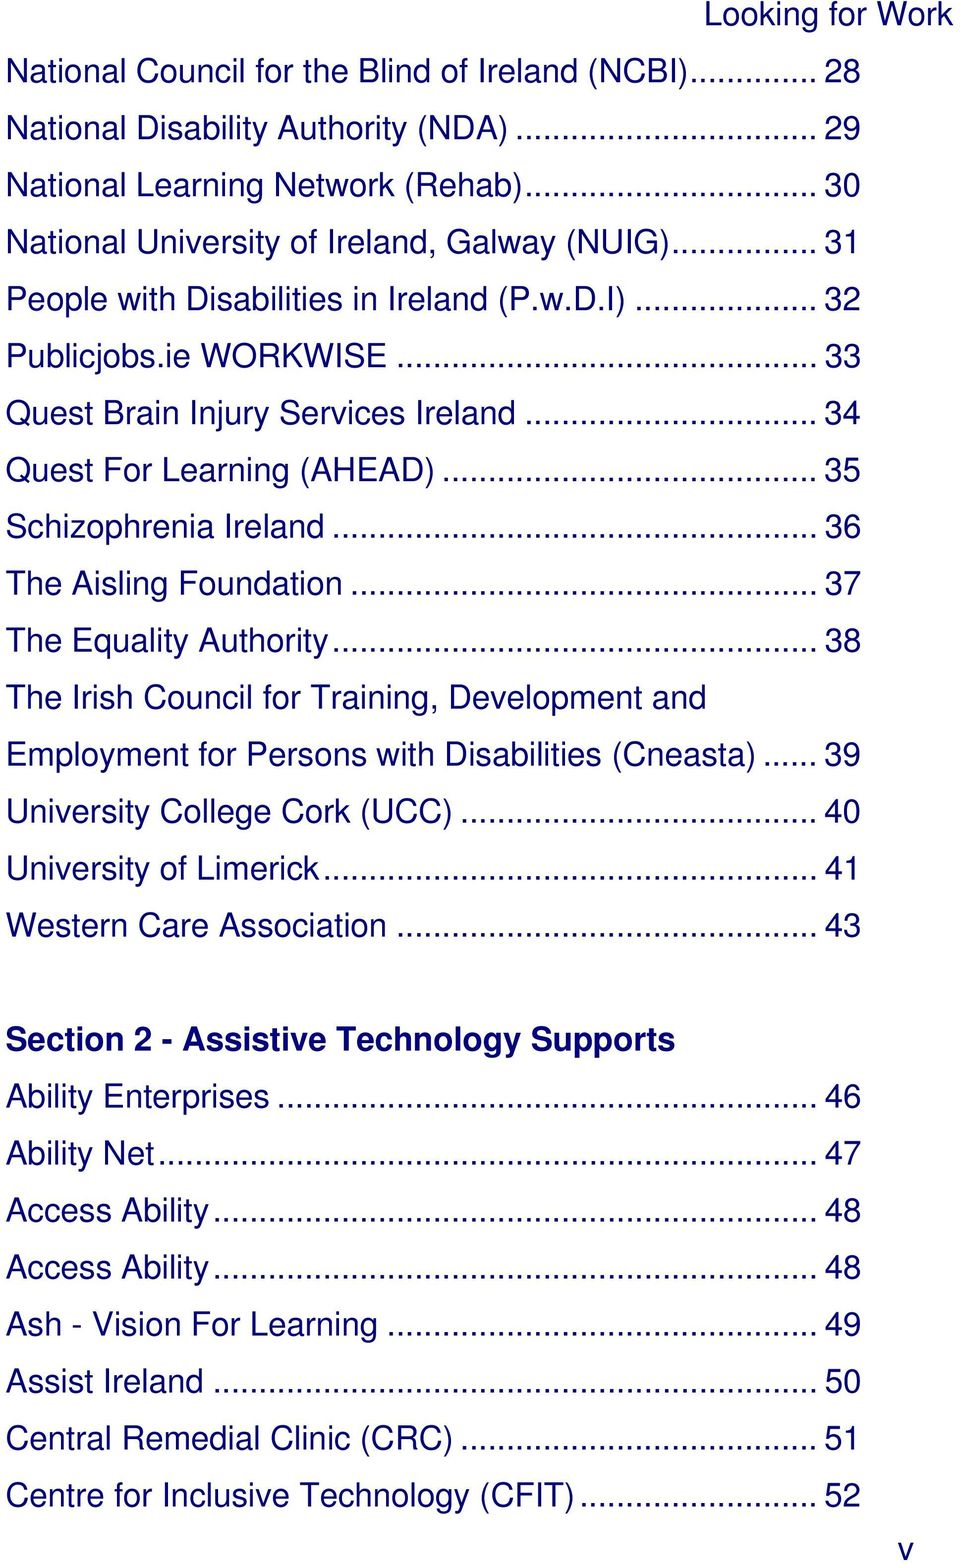 .. 36 The Aisling Foundation... 37 The Equality Authority... 38 The Irish Council for Training, Development and Employment for Persons with Disabilities (Cneasta)... 39 University College Cork (UCC).